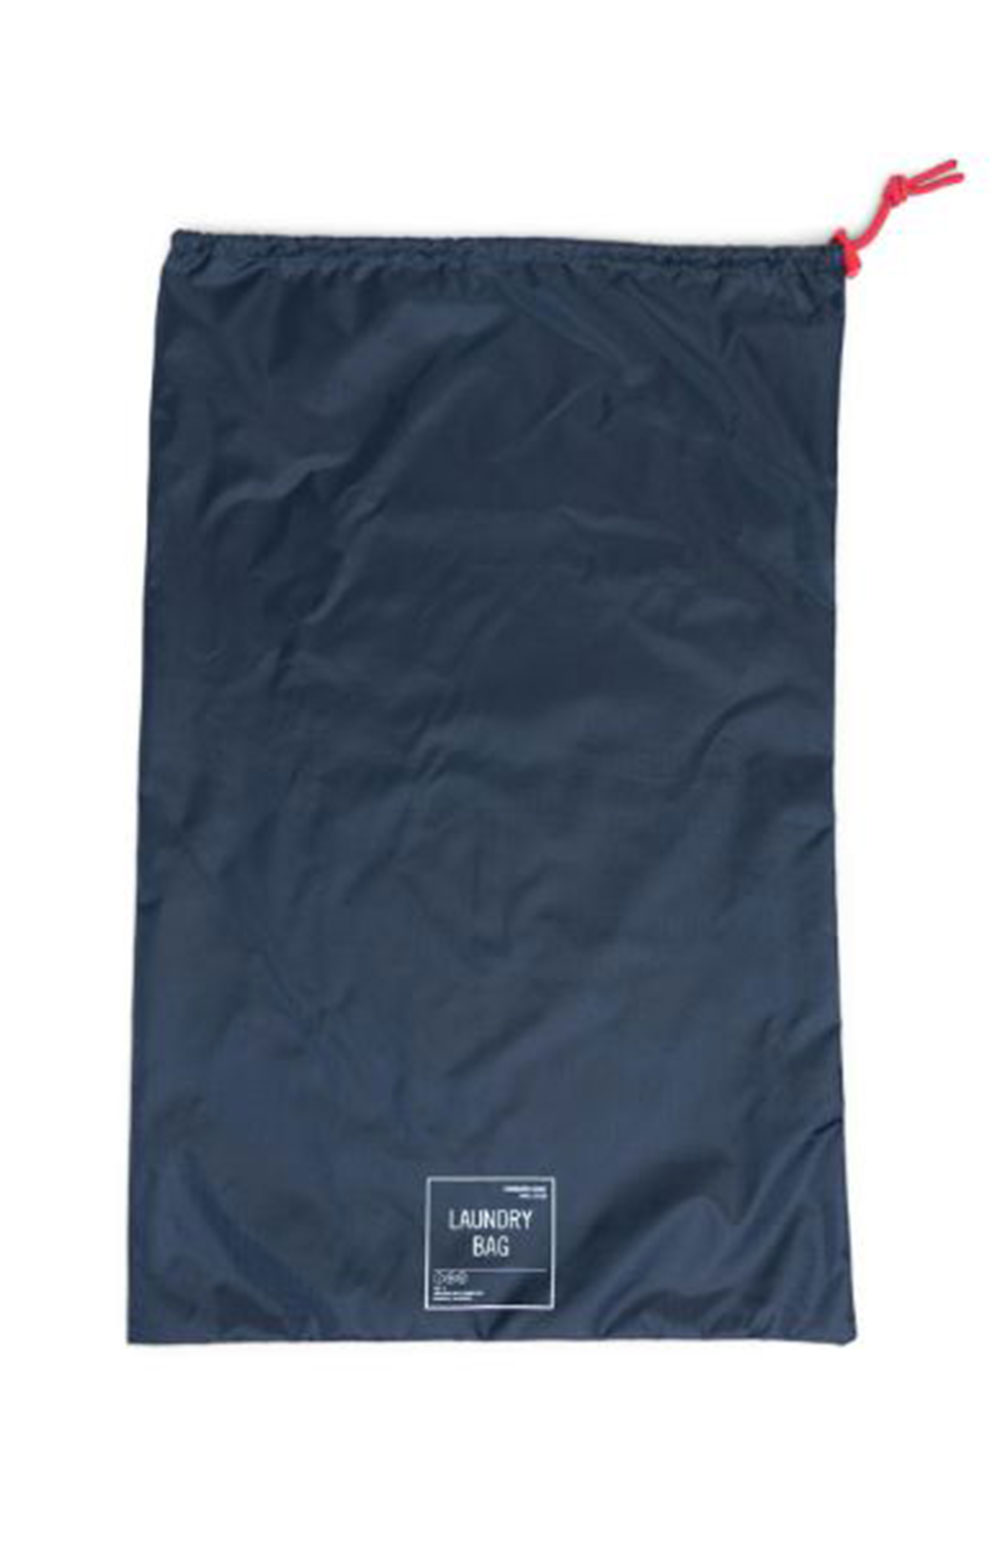 Laundry / Shoe Bag Set - Navy/Red 2